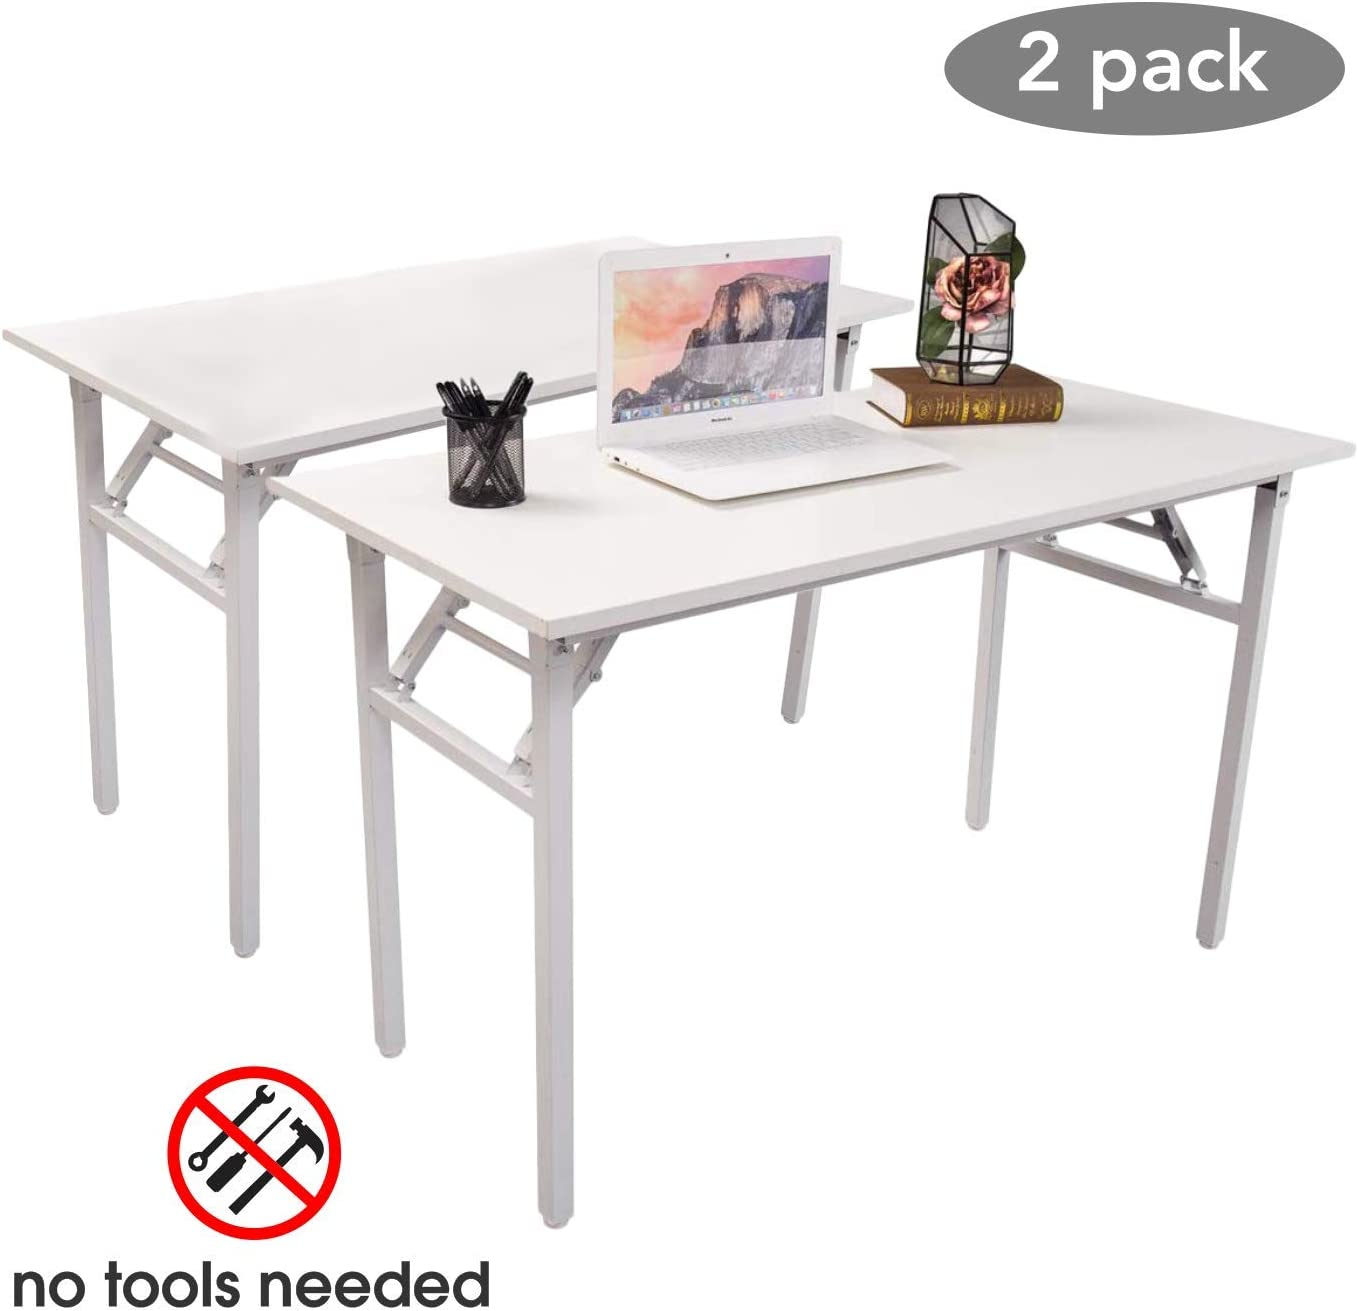 Halter Folding Computer Desk Foldable Writing & Study Table for